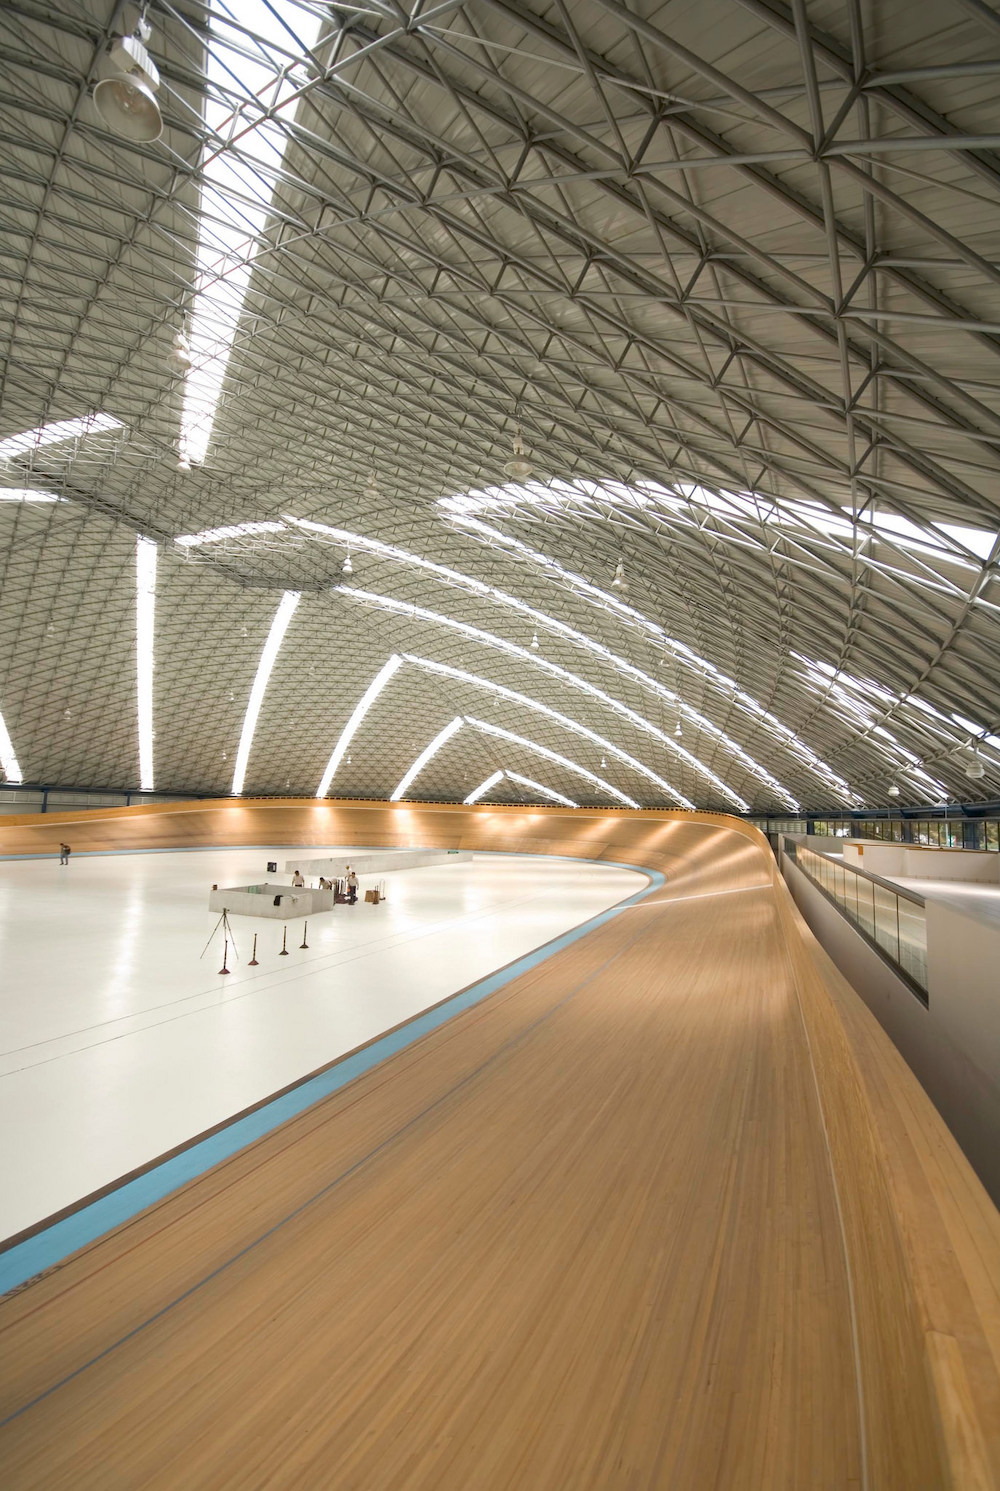 This velodrome accomodates professional cyclists and an occasional music concert